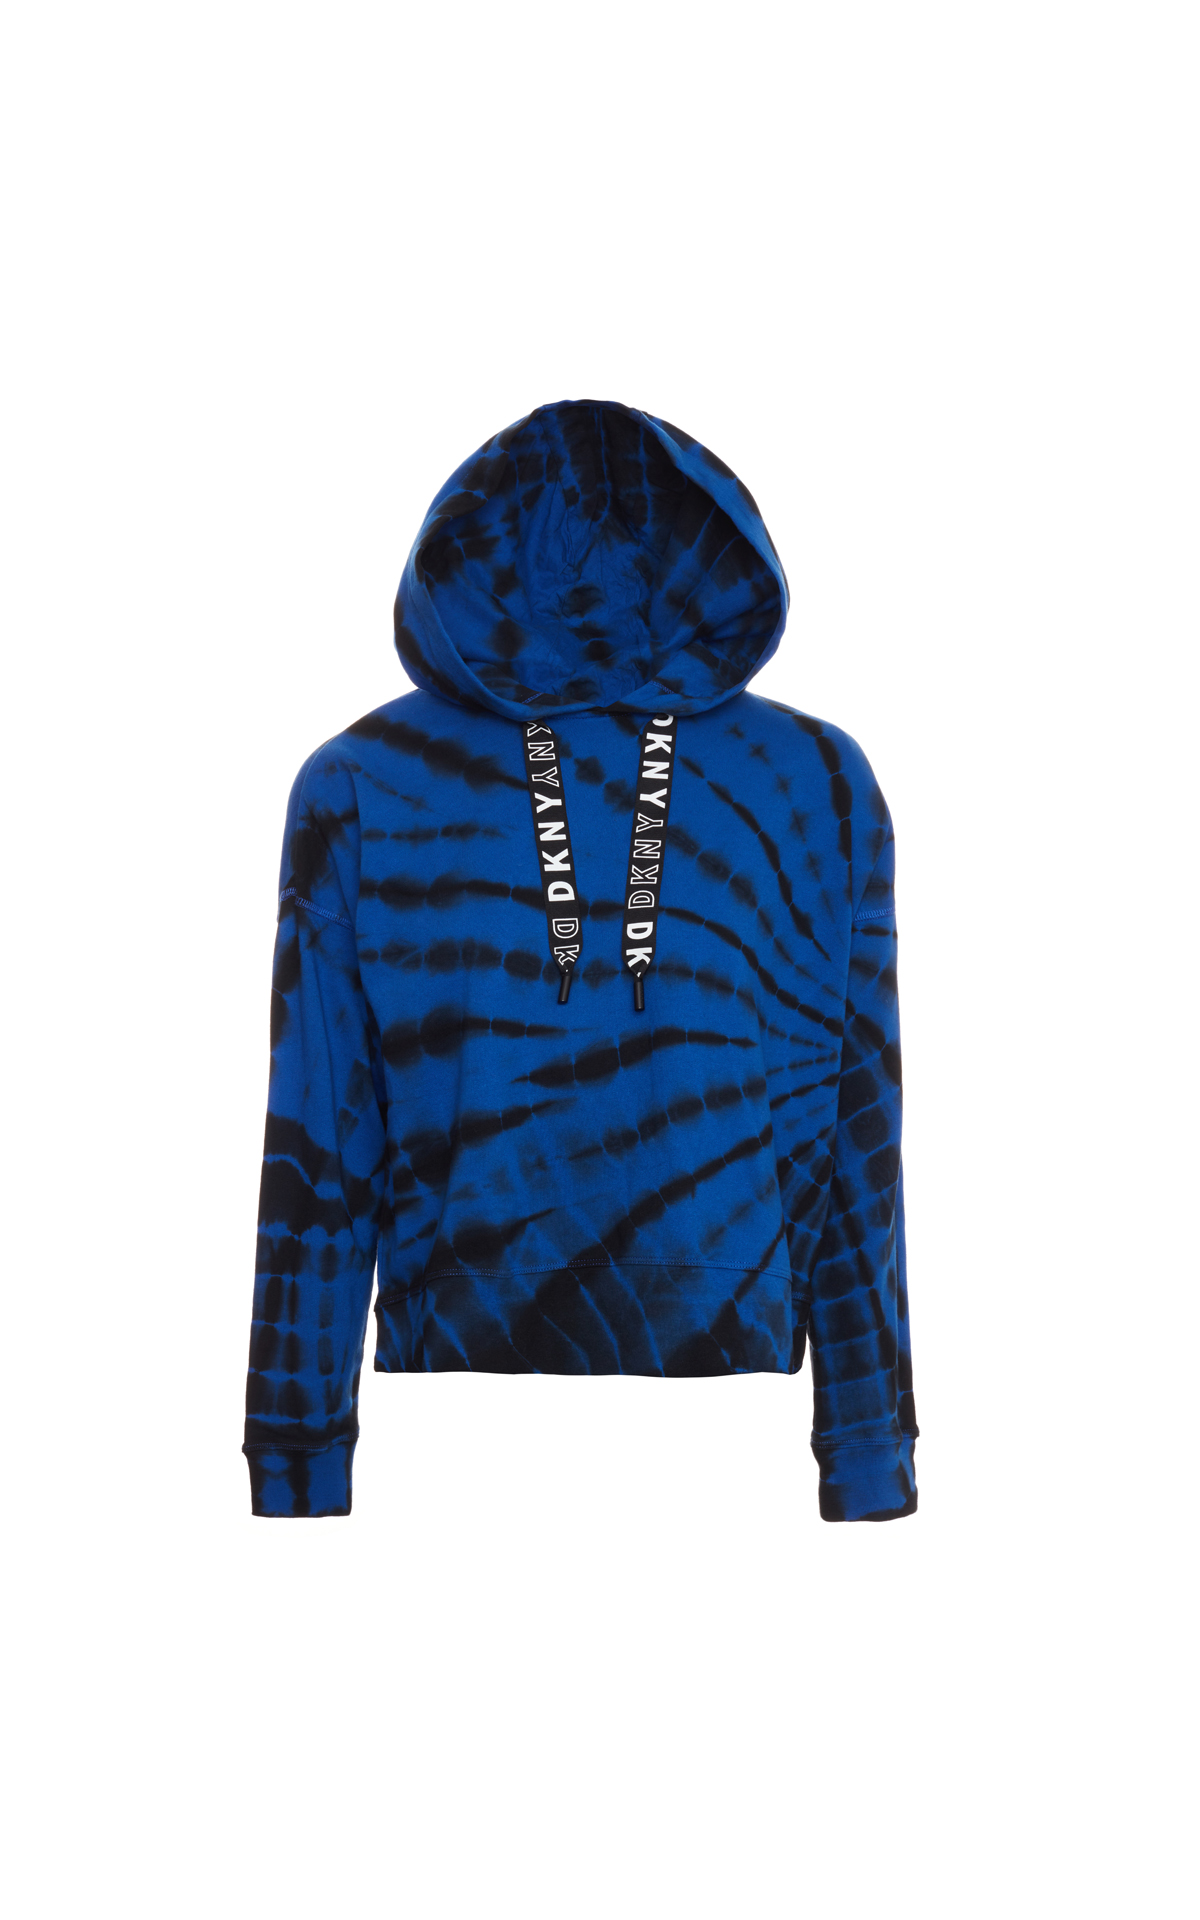 DKNY  Tie dye hoodie blue from Bicester Village